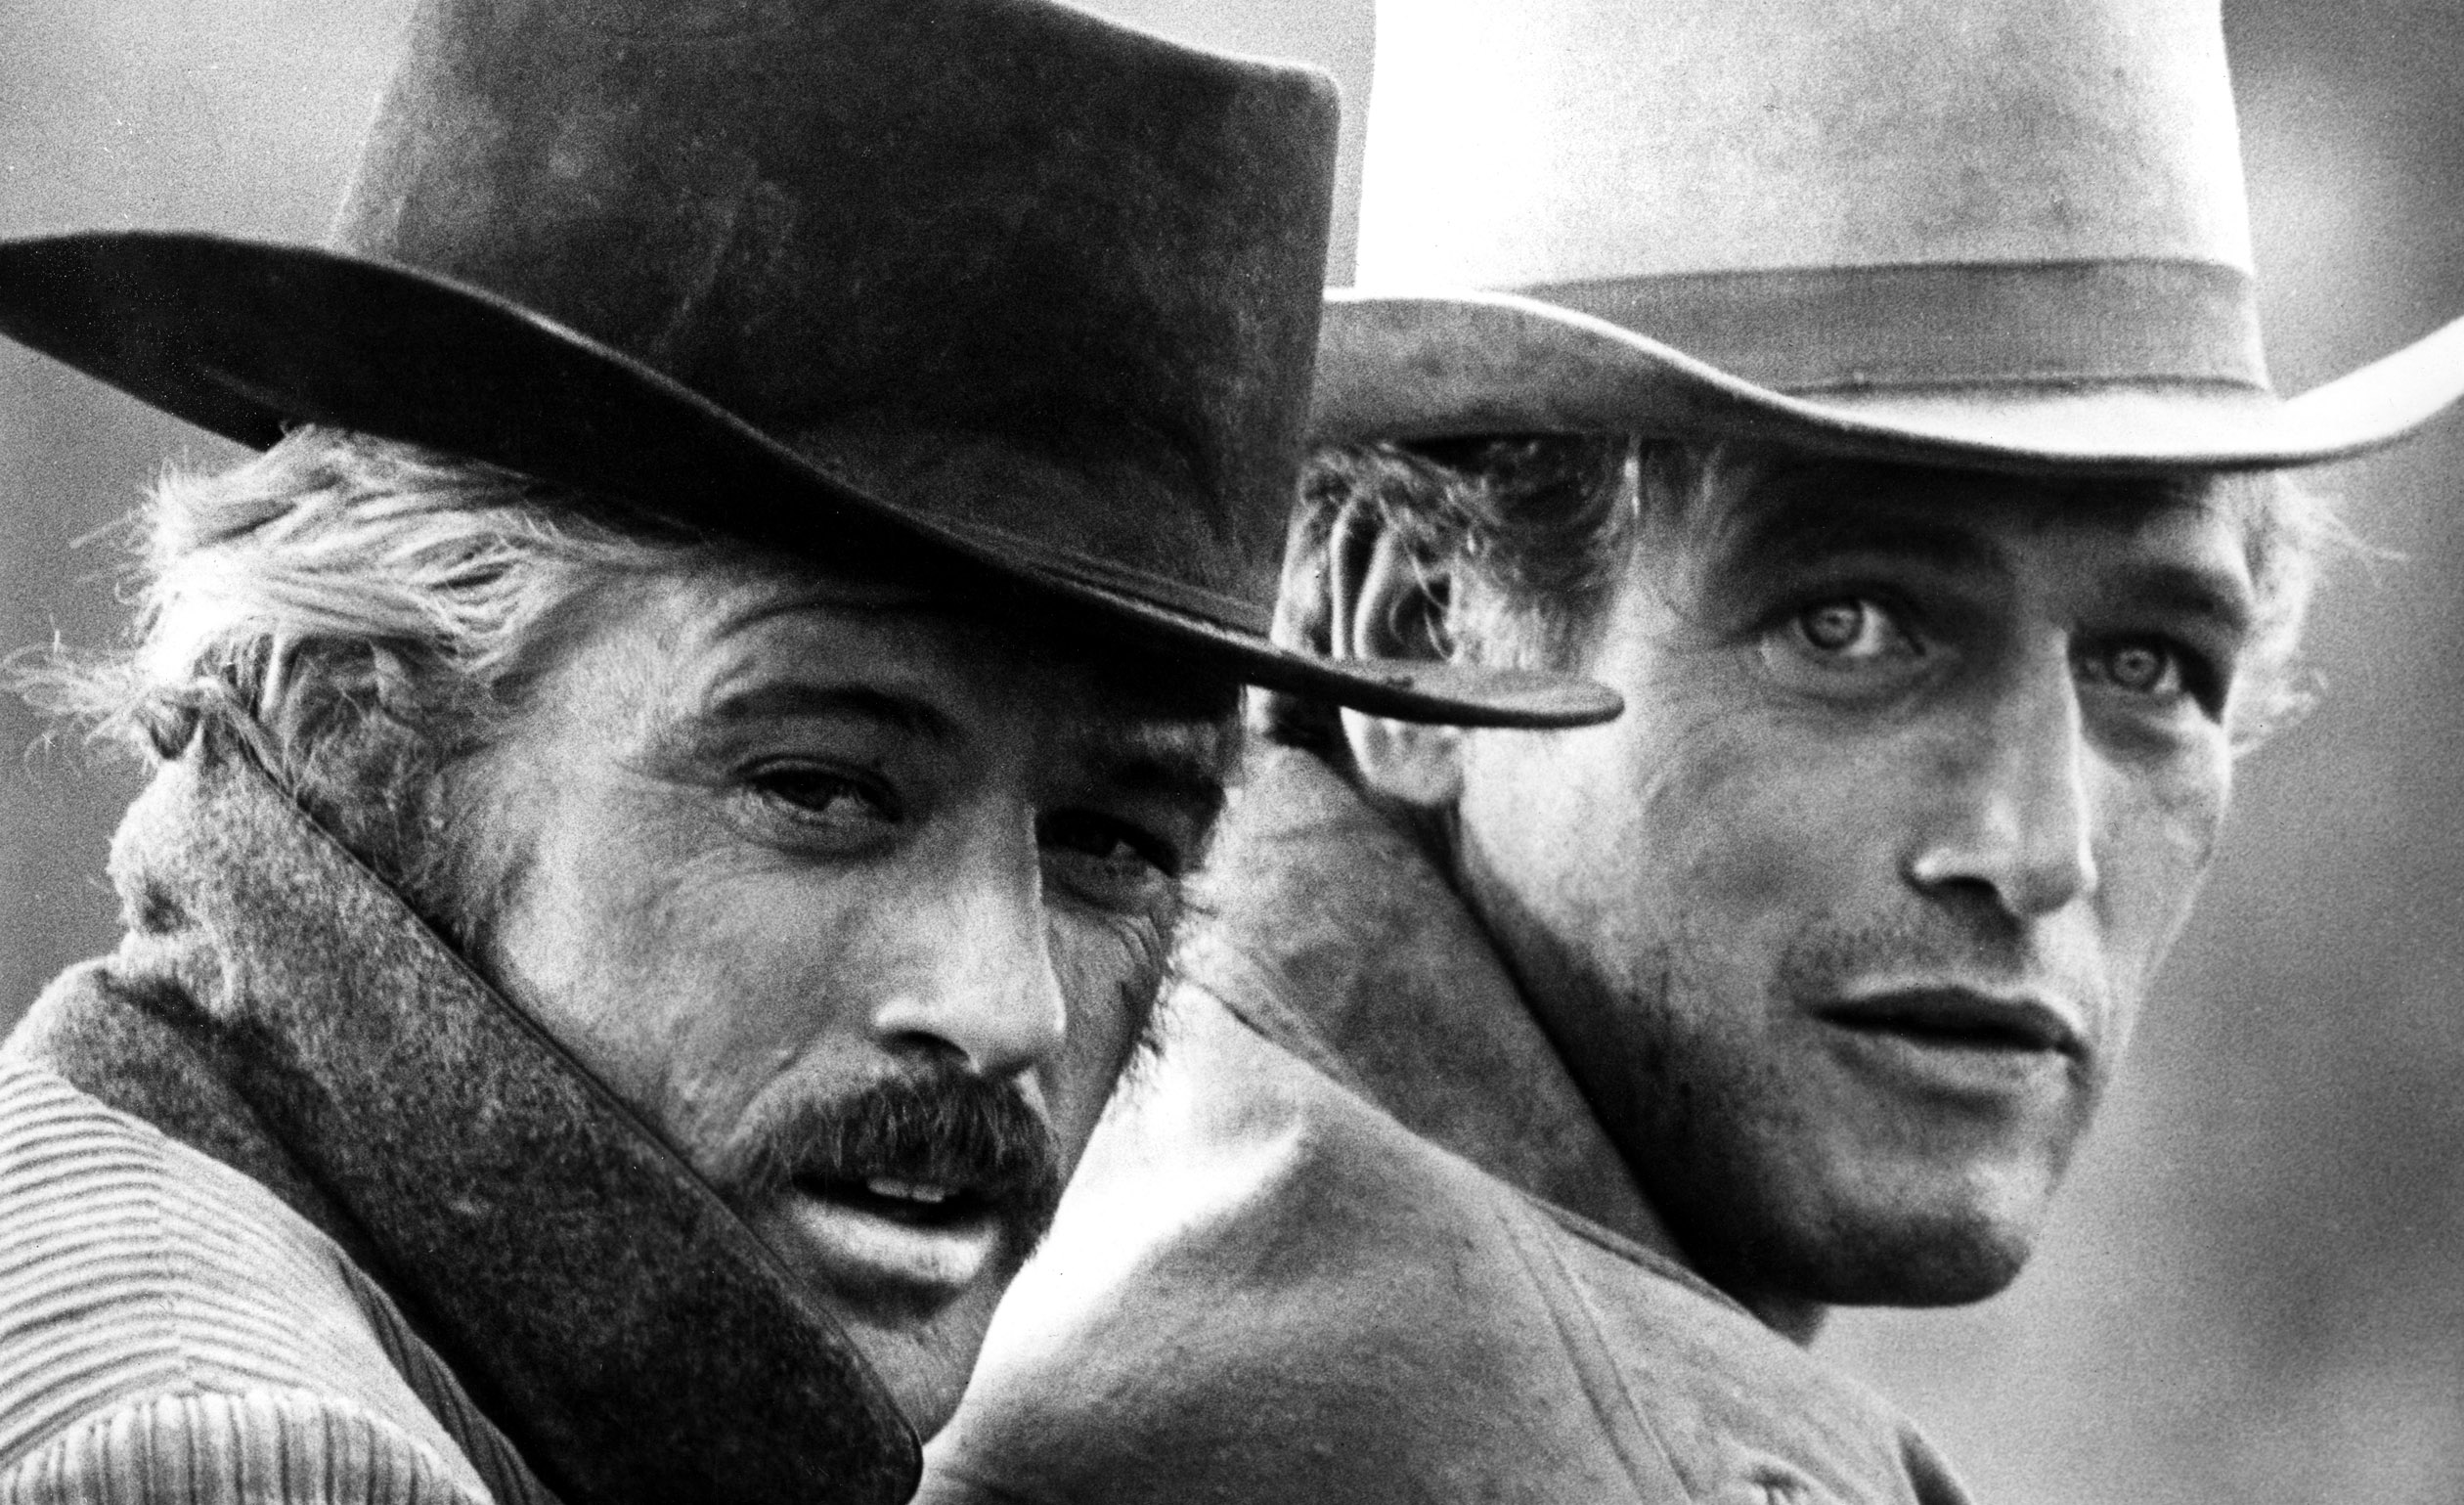 BUTCH CASSIDY AND THE SUNDANCE KID, Robert Redford, Paul Newman, 1969, TM and Copyright (c)20th Century Fox Film Corp. All rights reserved.